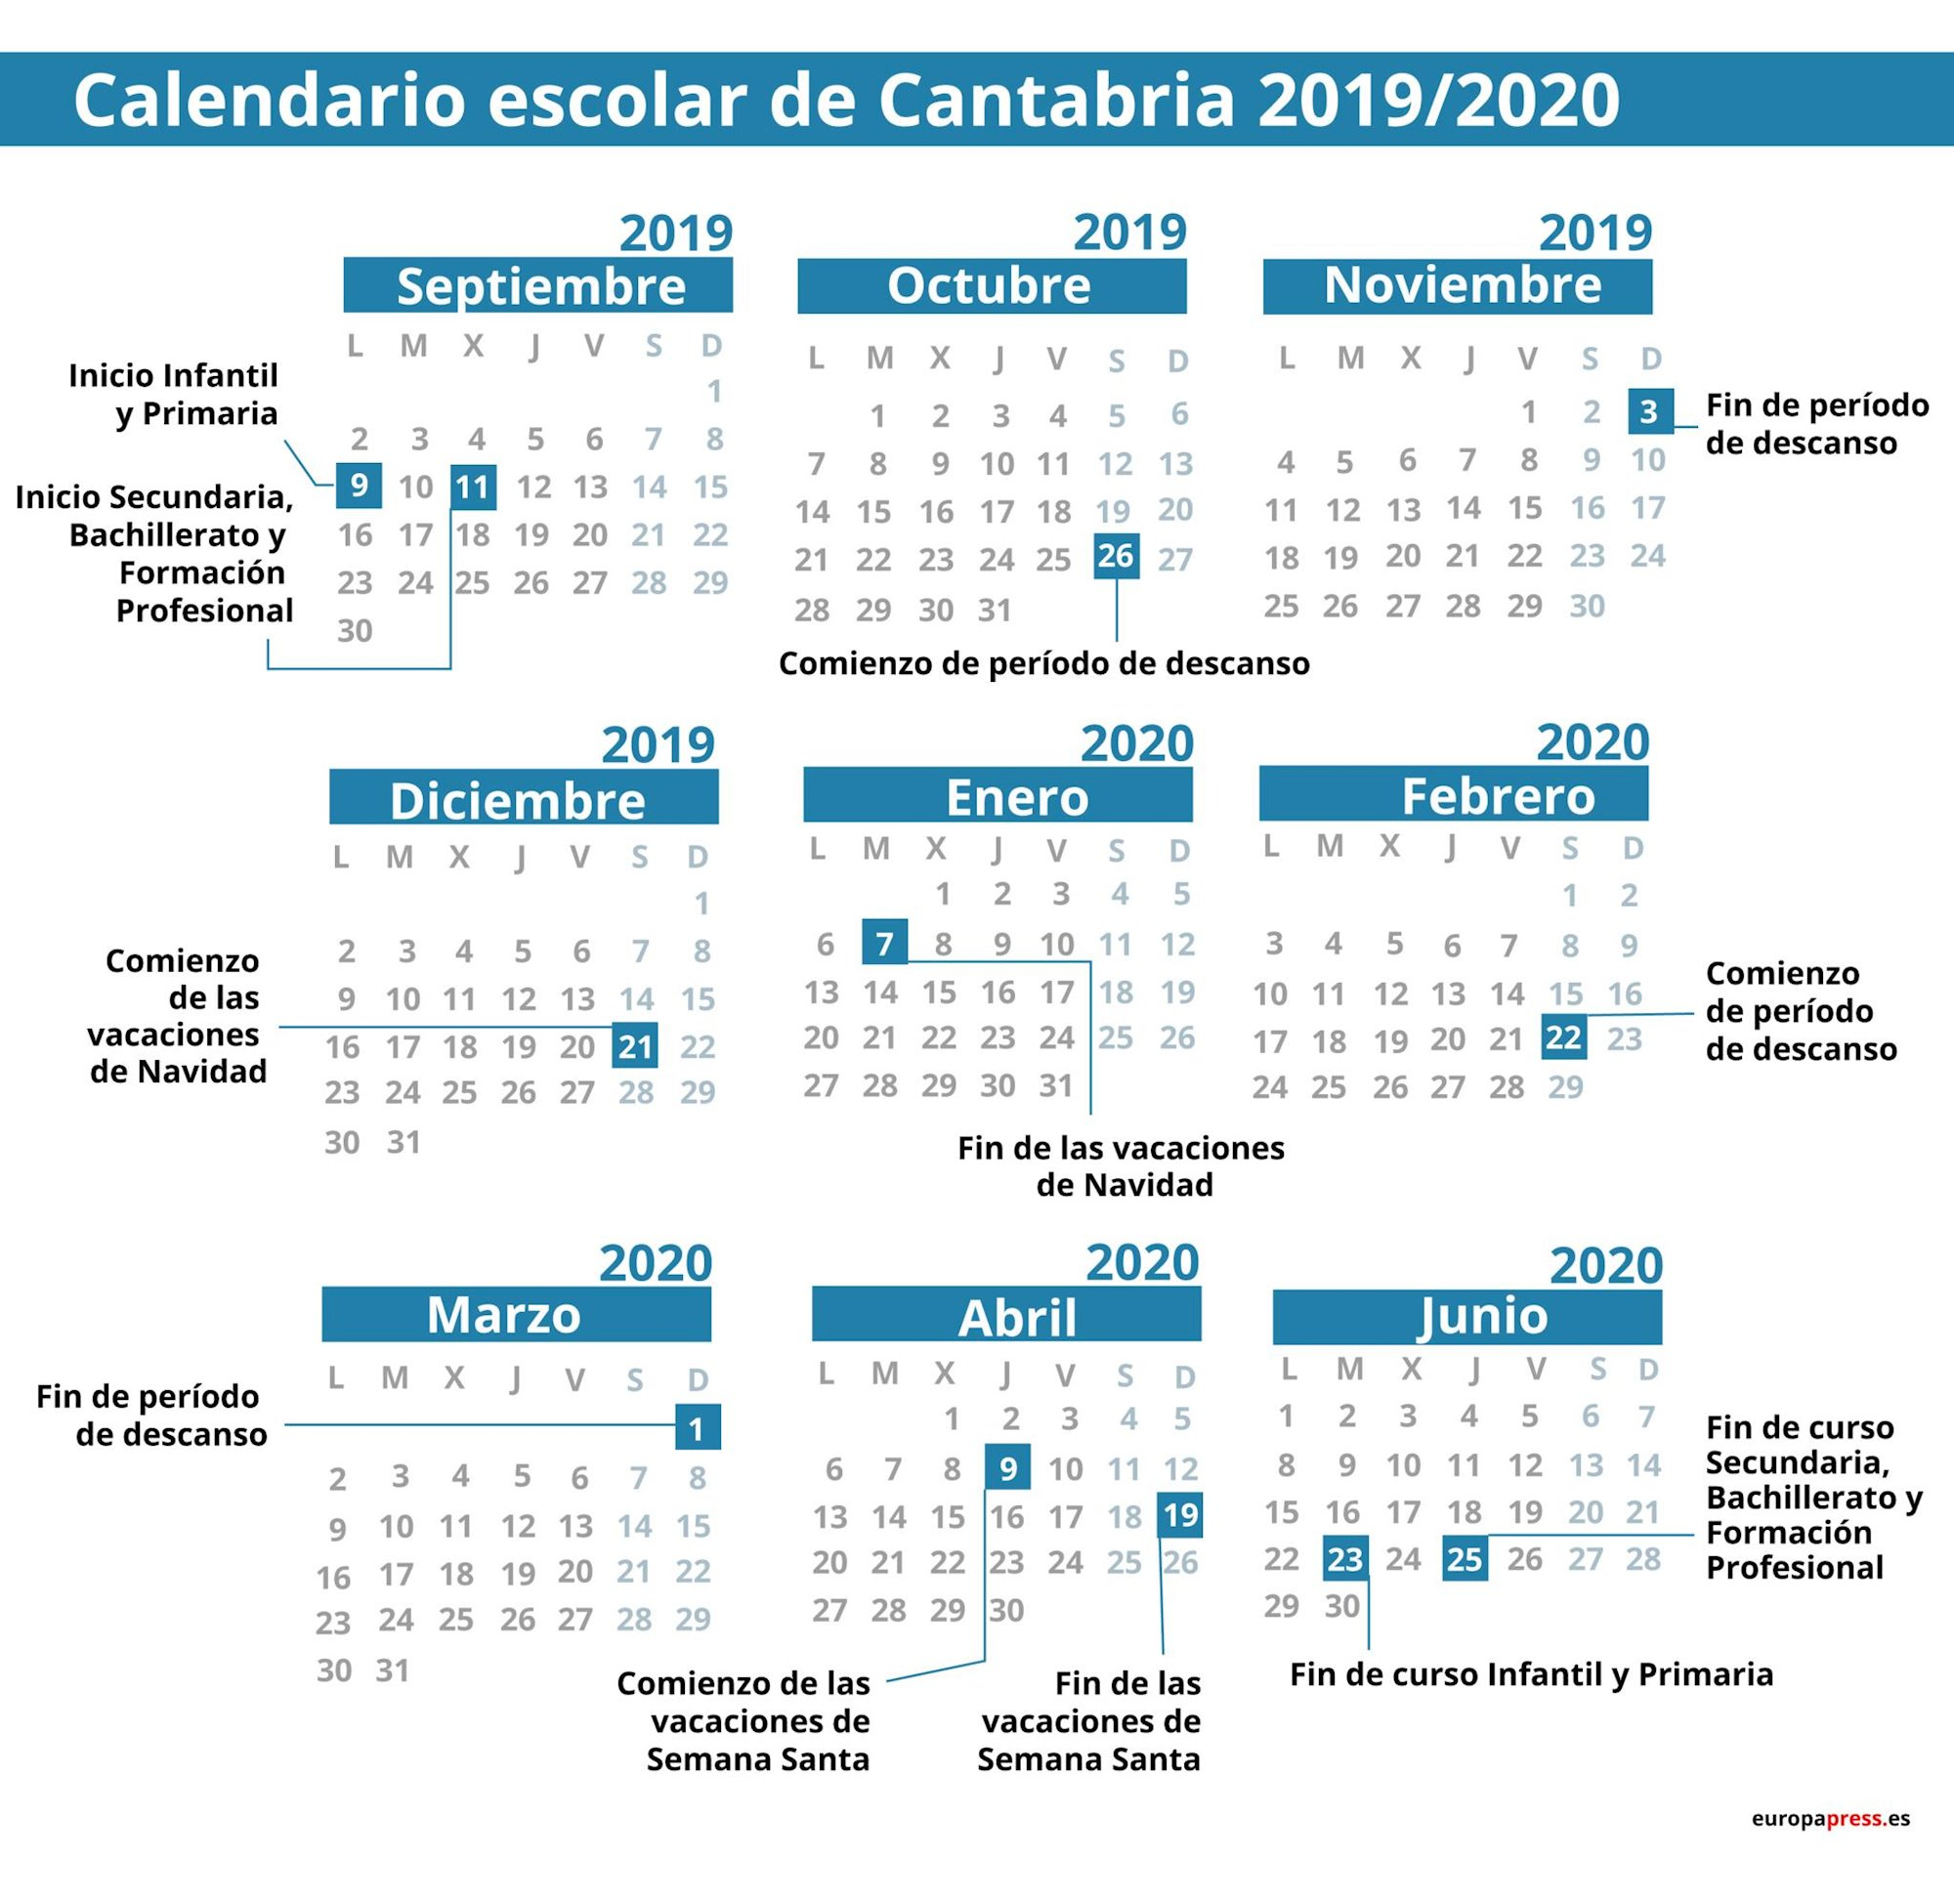 Calendario Escolar En Cantabria 20192020: Navidad, Semana pertaining to Calendario 2020 Con Semanas